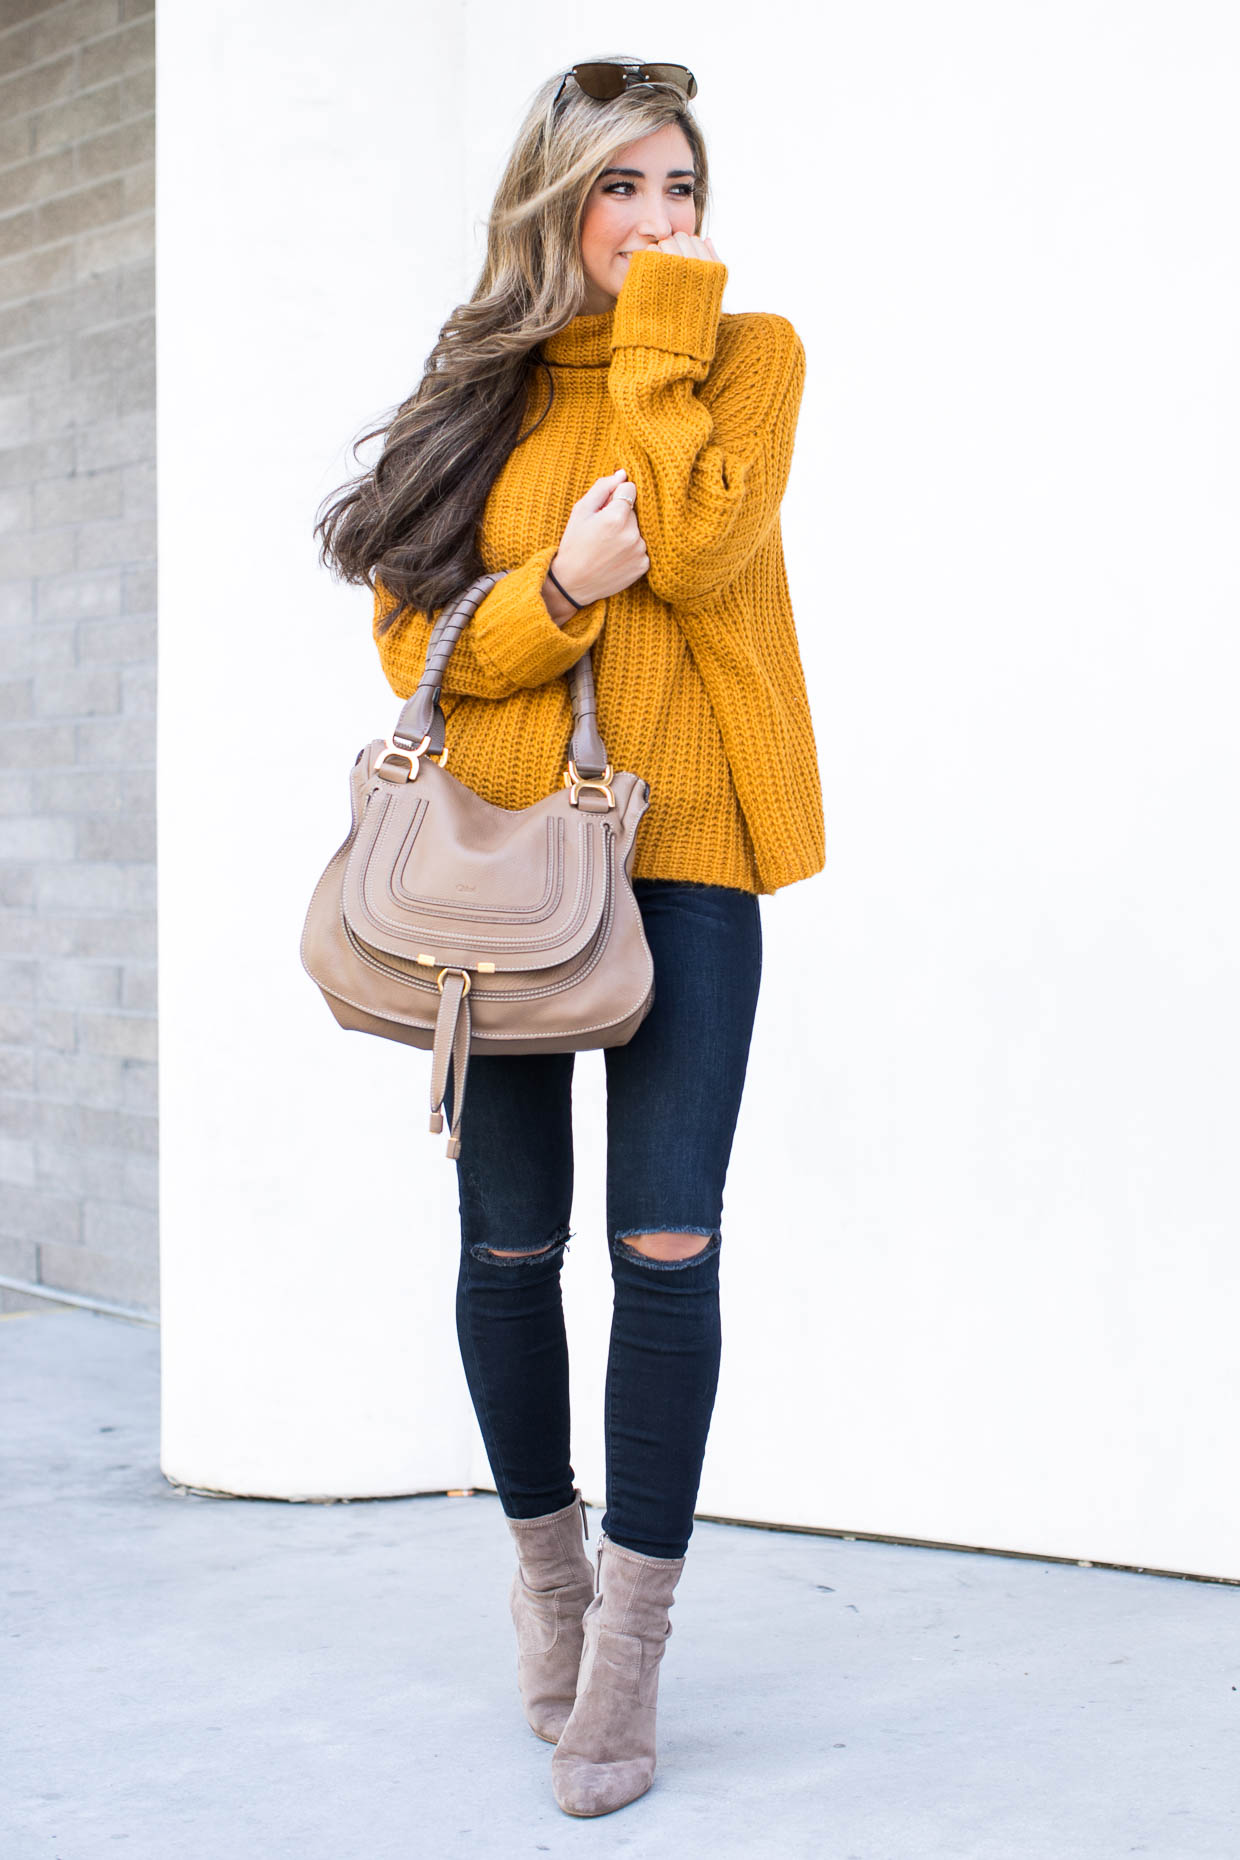 Fashion blogger The Darling Detail wears Leith Chunky Turtleneck Sweater, FRAME 'Le High Skinny' High Rise Crop Jeans (Sterling), Steve Madden Edit Bootie, LE SPECS 'The Prince' 57mm Sunglasses, Chloe 'Marcie - Small' Leather Satchel, Larsson & Jennings 'Lugano' Mesh Strap Watch